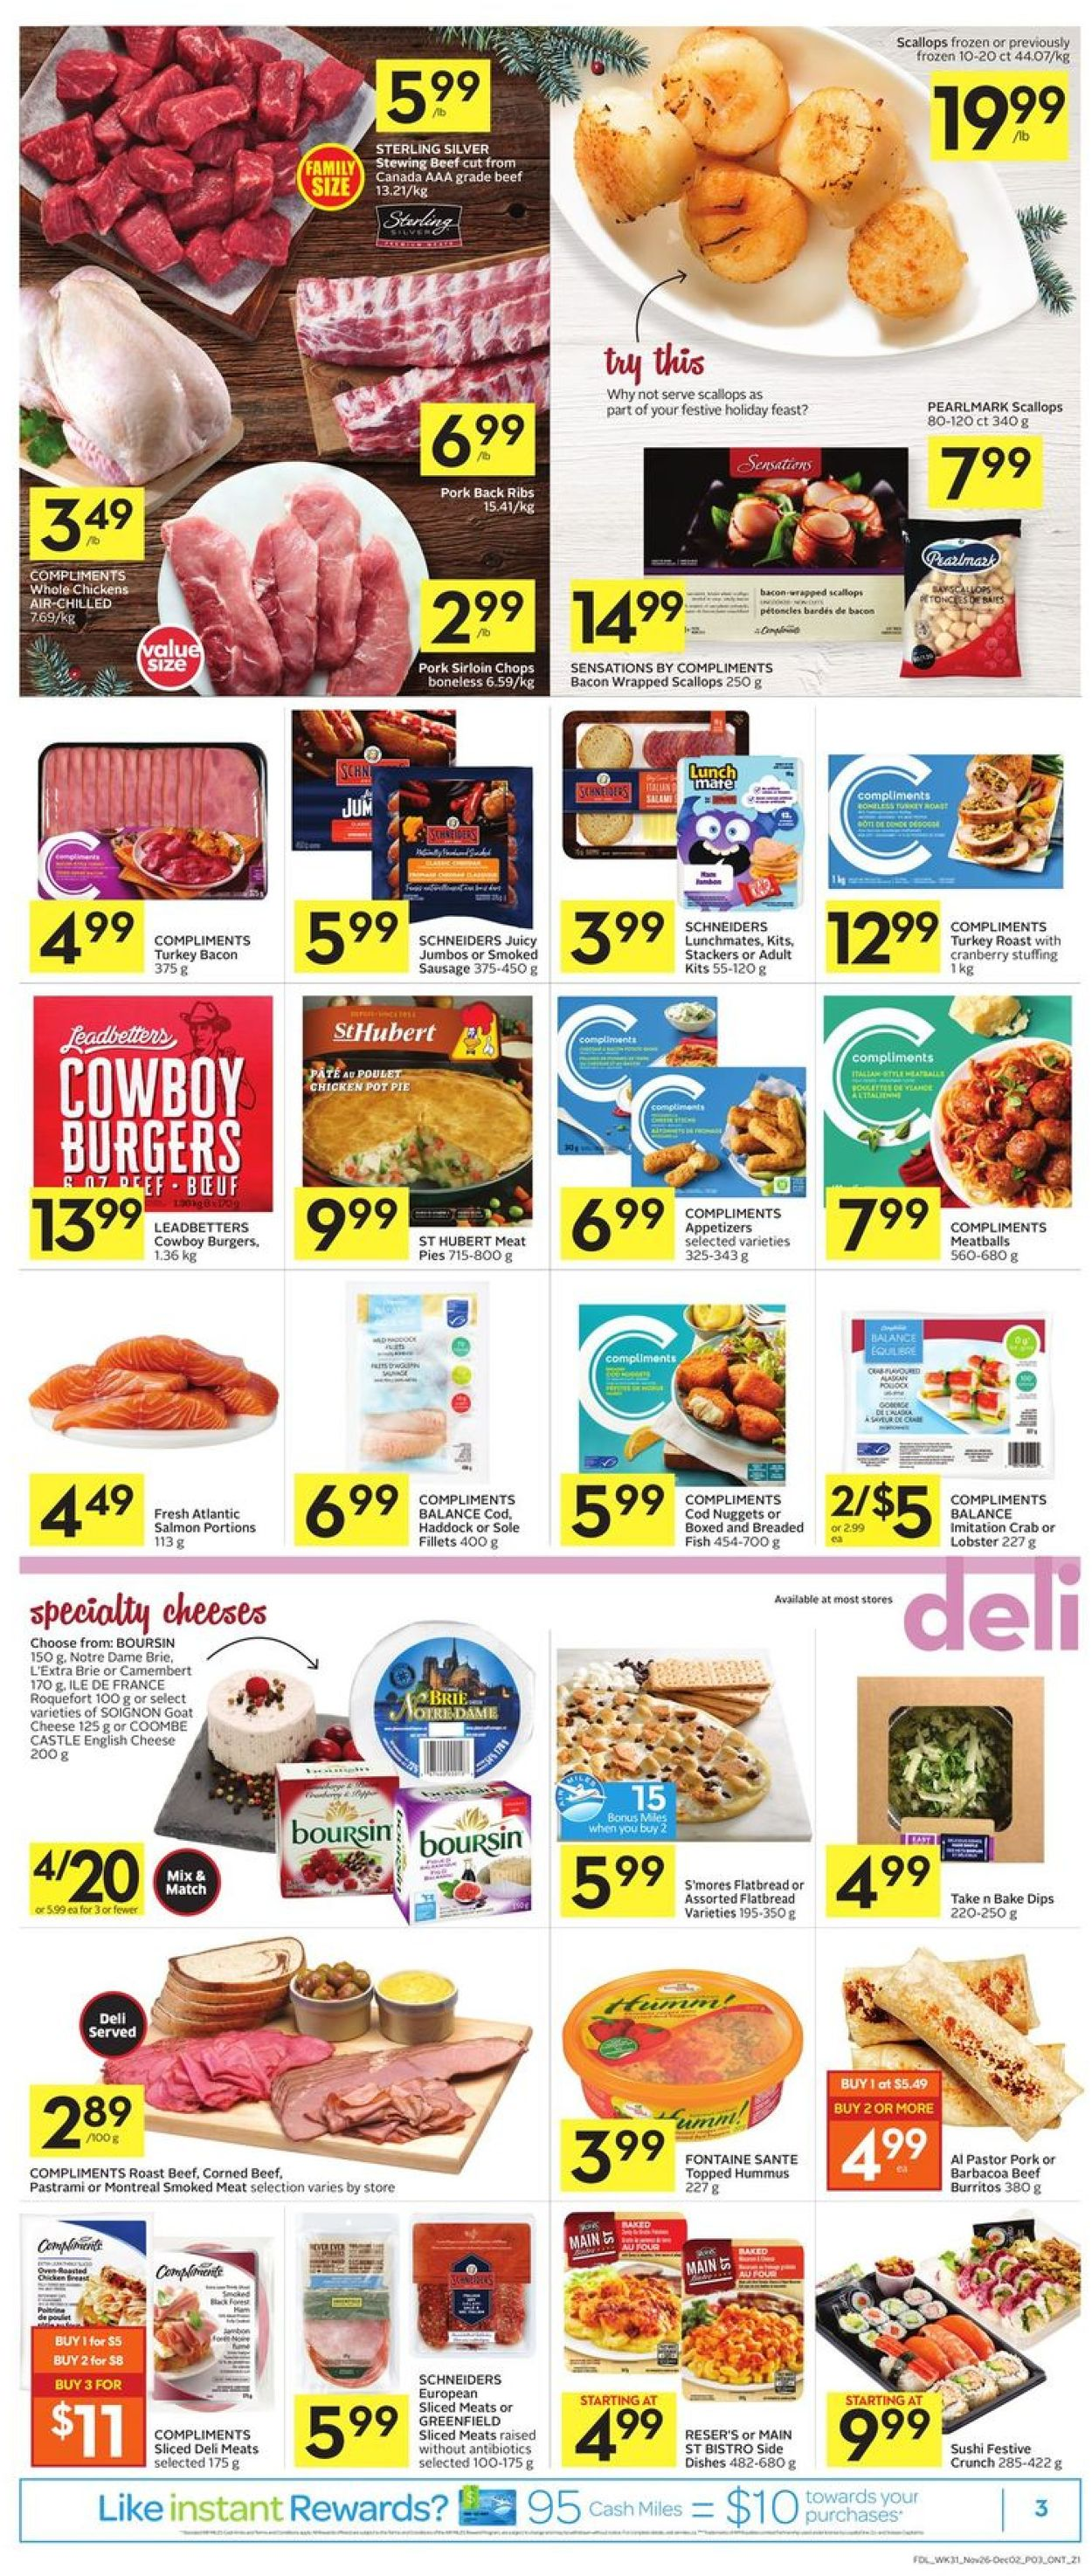 Foodland - Black Friday 2020 Flyer - 11/26-12/02/2020 (Page 3)